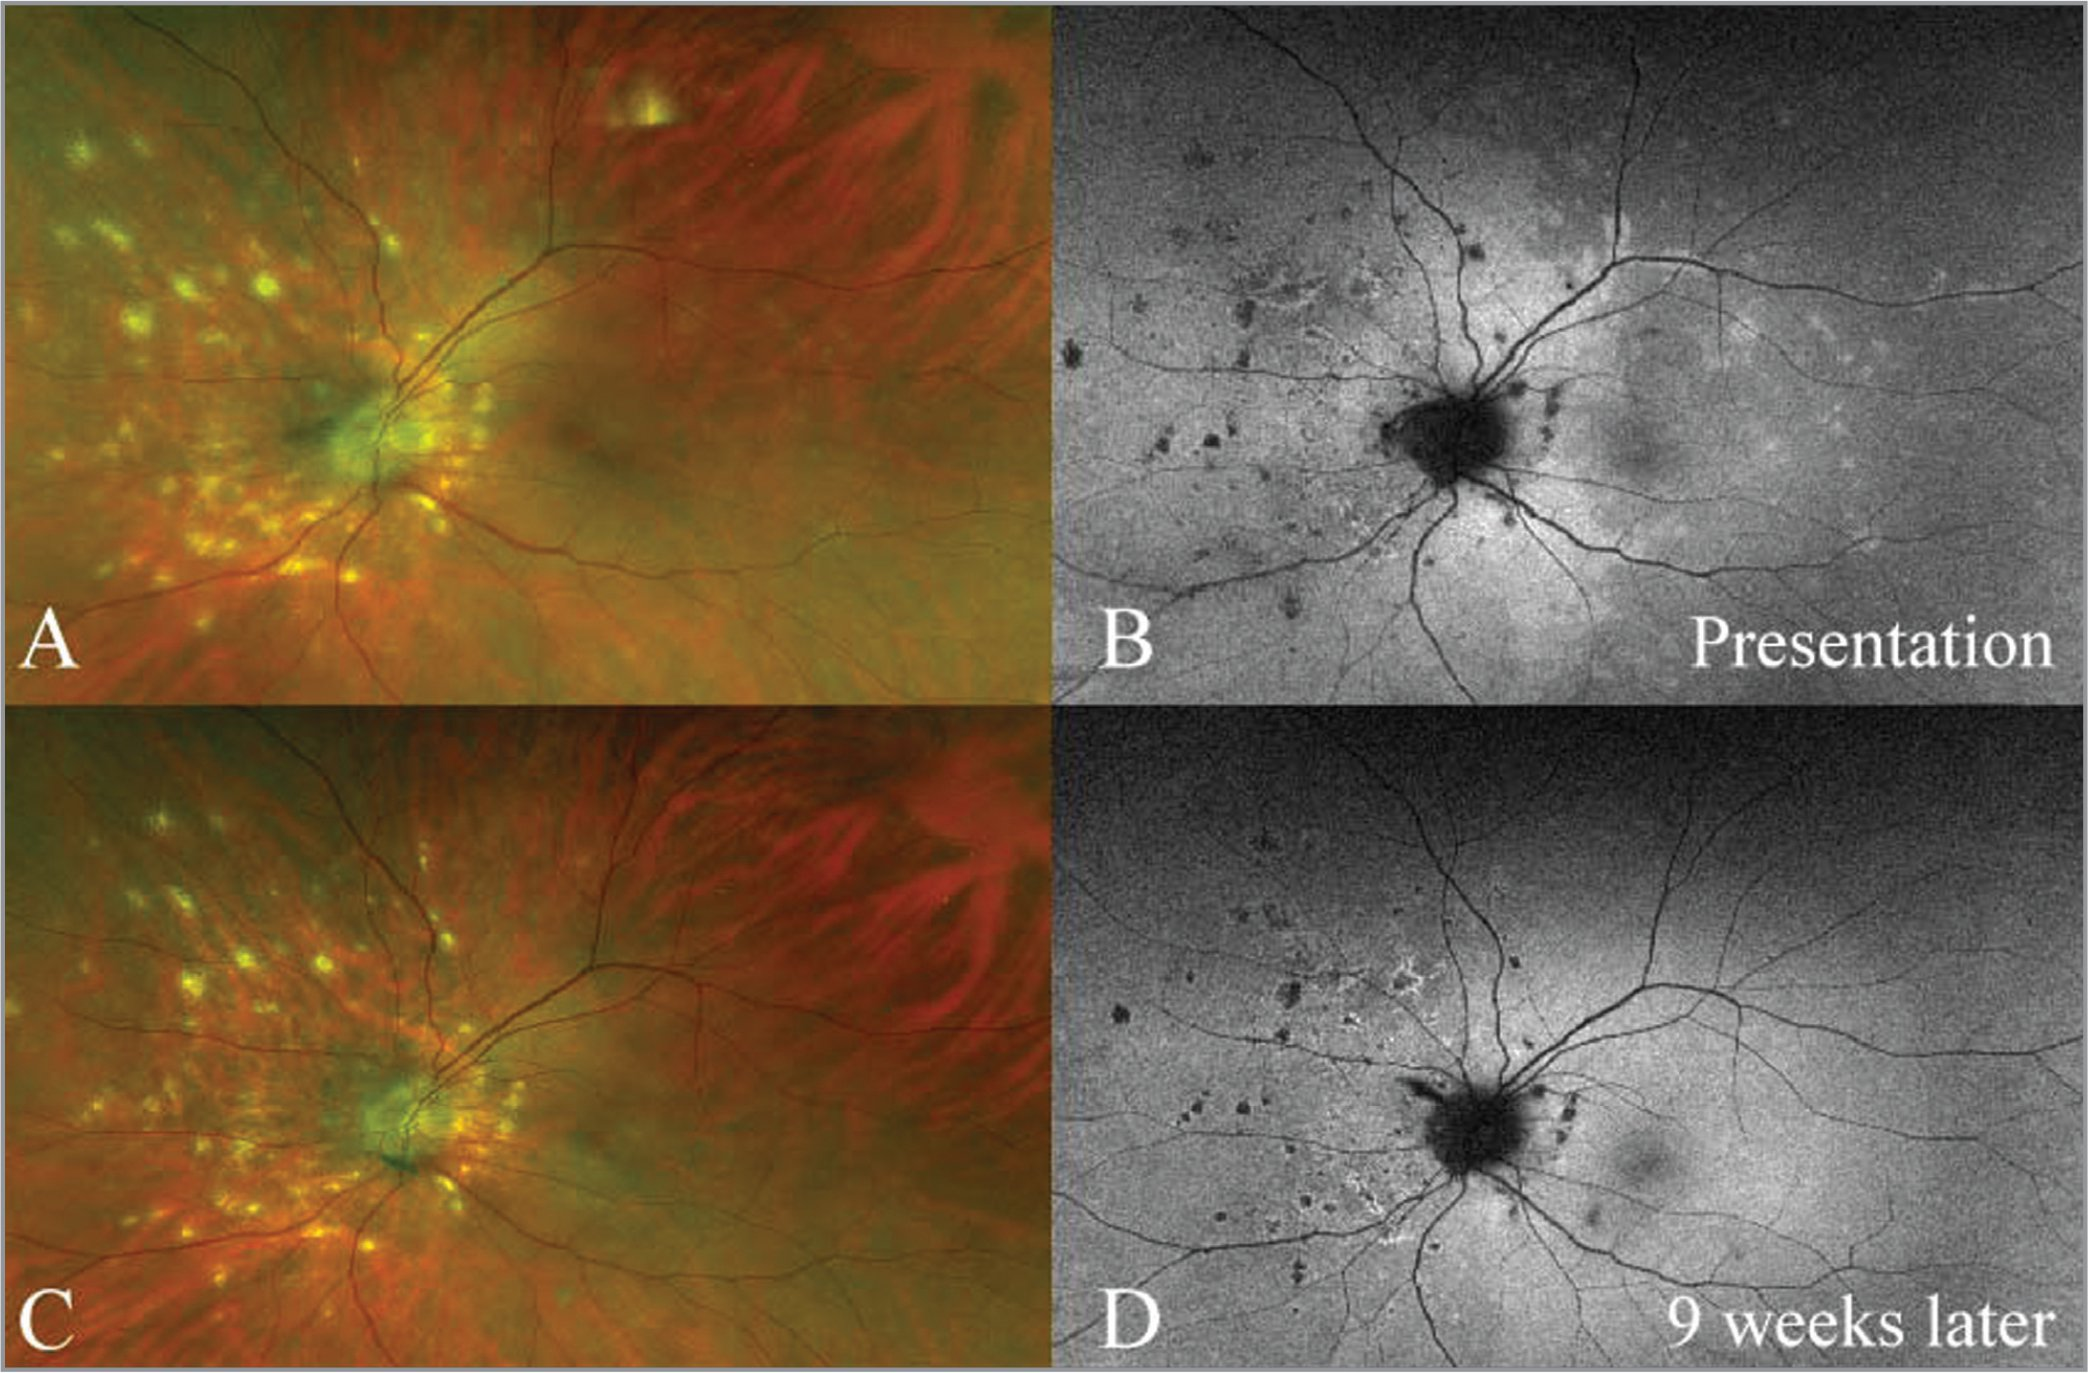 Color photographs (A, C) and fundus autofluorescence (FAF) (B,D) of a patient with transient hyperautofluorescence, which resolved by 9 weeks after initial presentation. There is very little evidence of change in the color photos, but the FAF demonstrates marked resolution of the abnormal hyperautofluorescence seen at presentation.